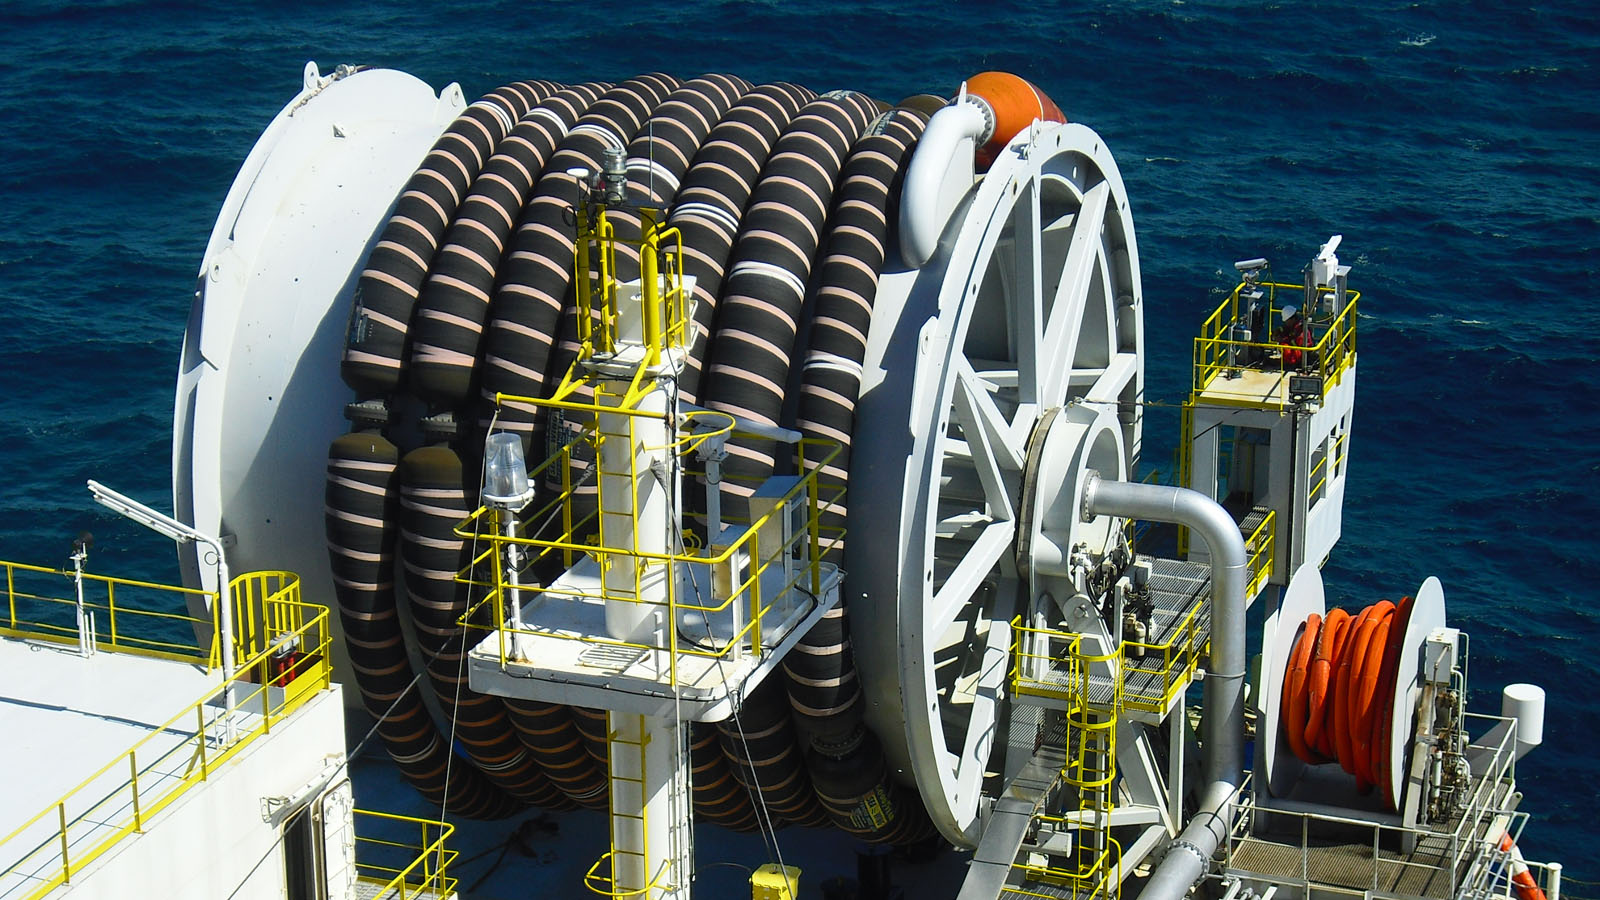 Royal IHC awarded major contract for supply of FPSO Equipment for Yinson